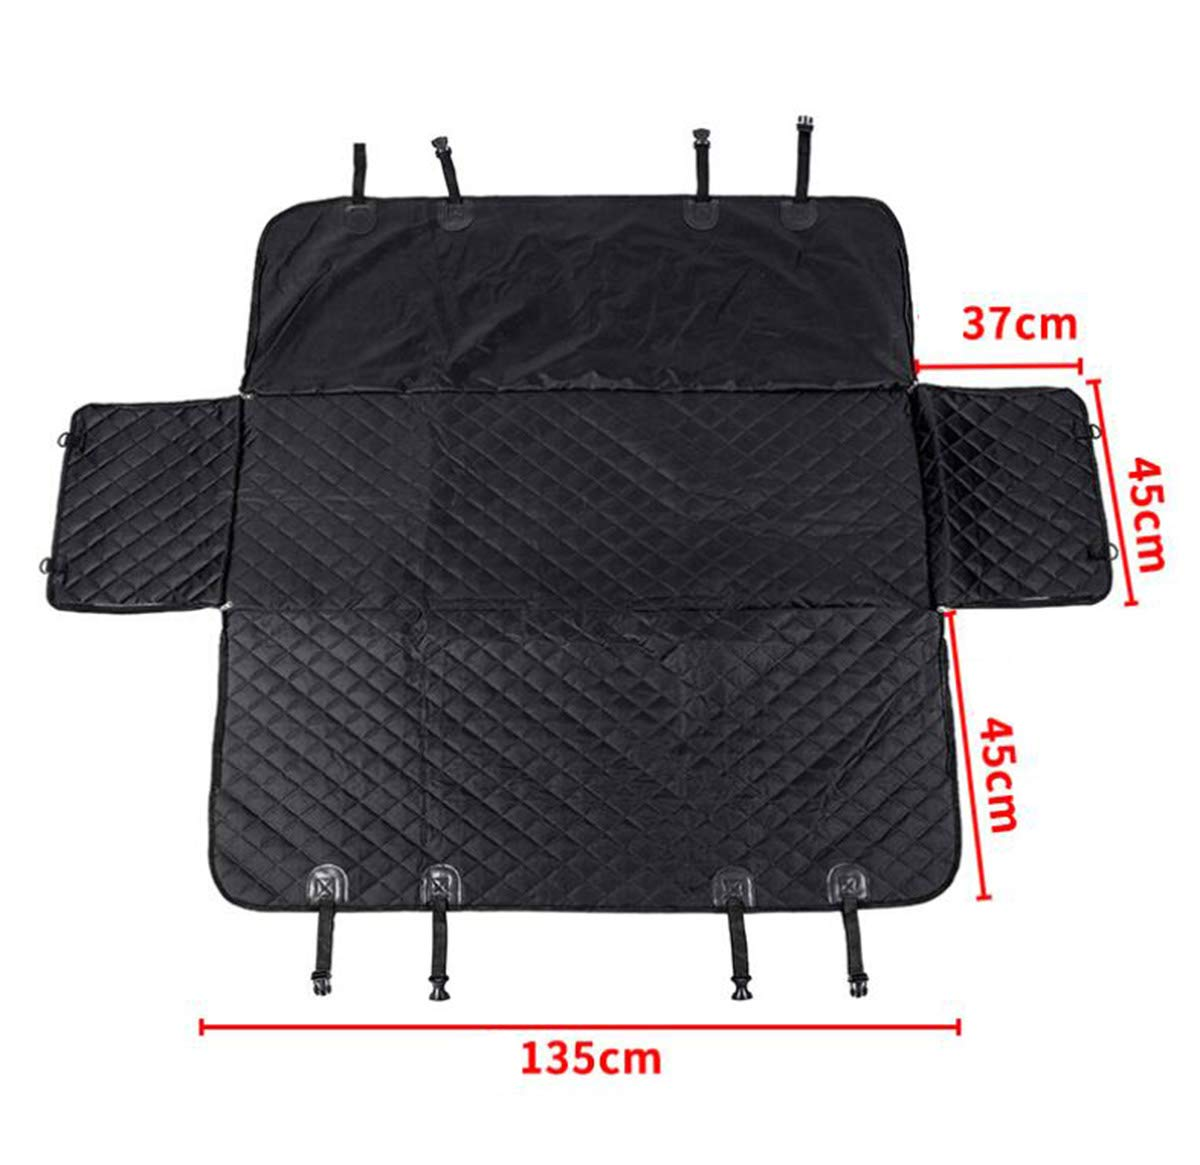 Black-C 135X155CM Black-C 135X155CM BYCDD Dog Car Seat Covers for Back Seat, Waterproof Nonslip Pet Back Seat Covers Cover Predector Easy to Clean Universal Size Dog Hammock,Black-C_135X155CM